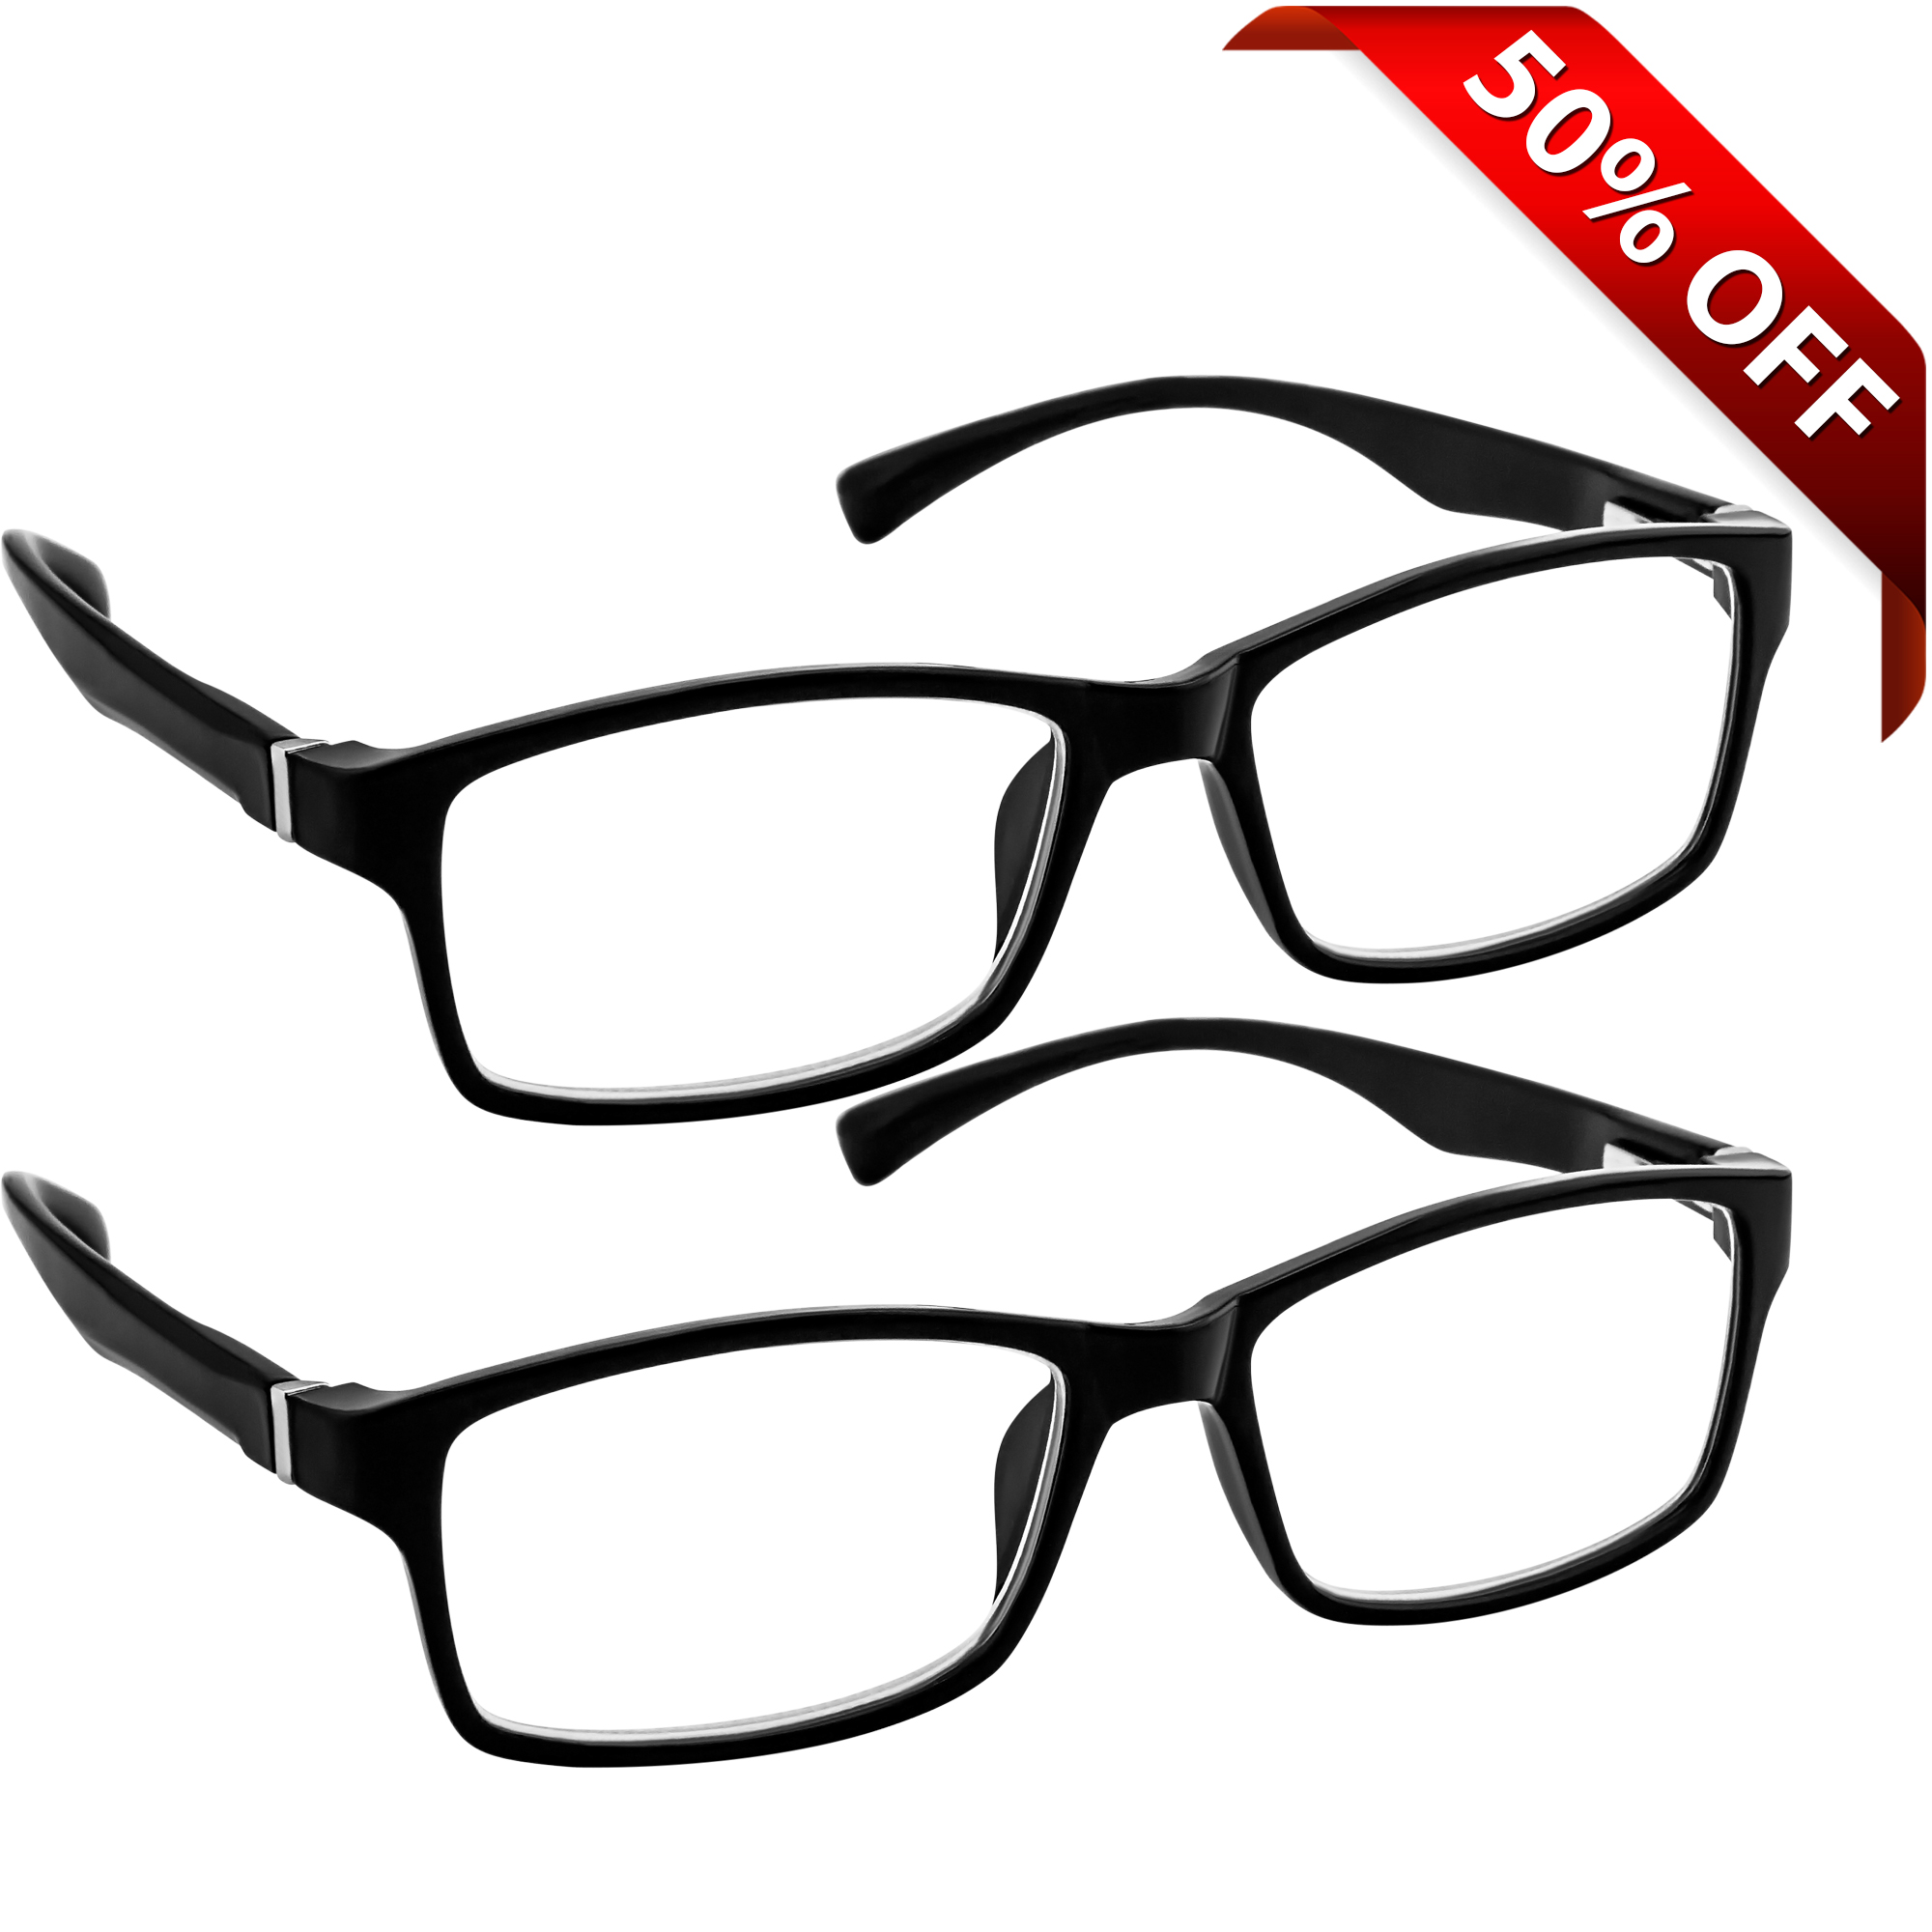 computer reading glasses 3 00 protection yourself from